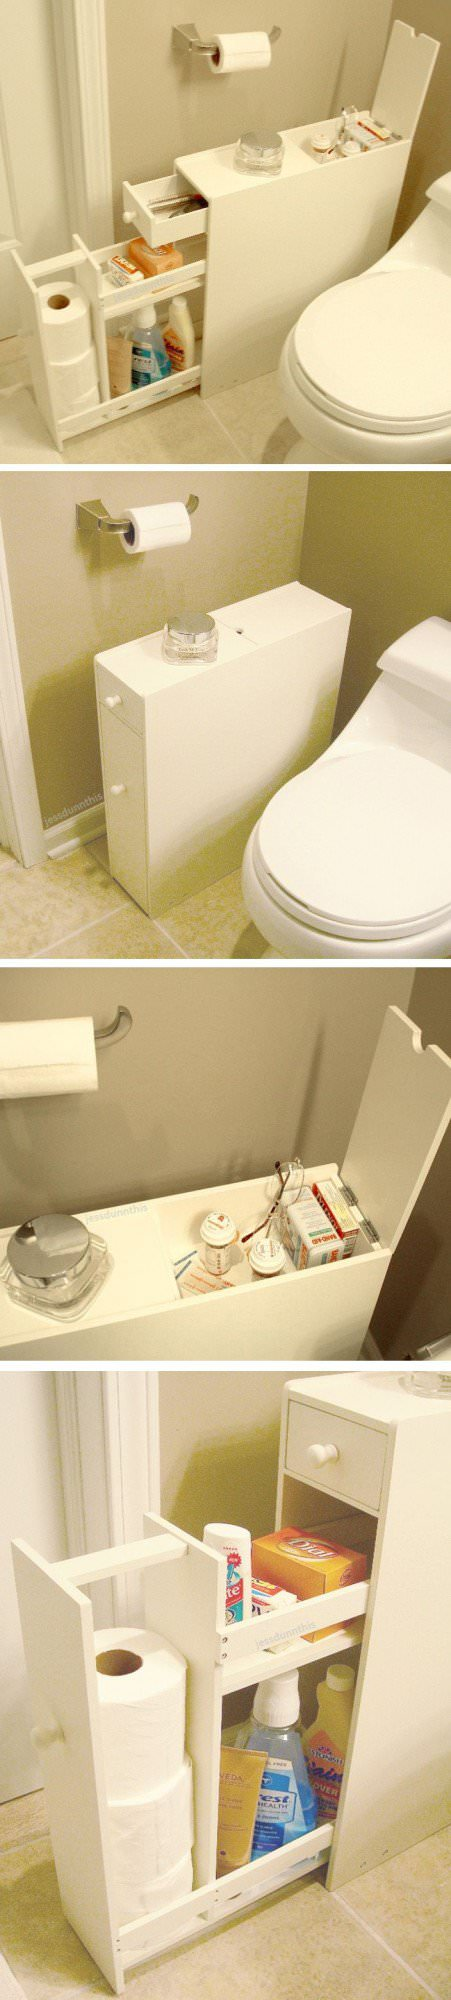 Top 25 the best diy small bathroom storage ideas that will fascinate you veryhom for Bathroom shelving ideas for small spaces